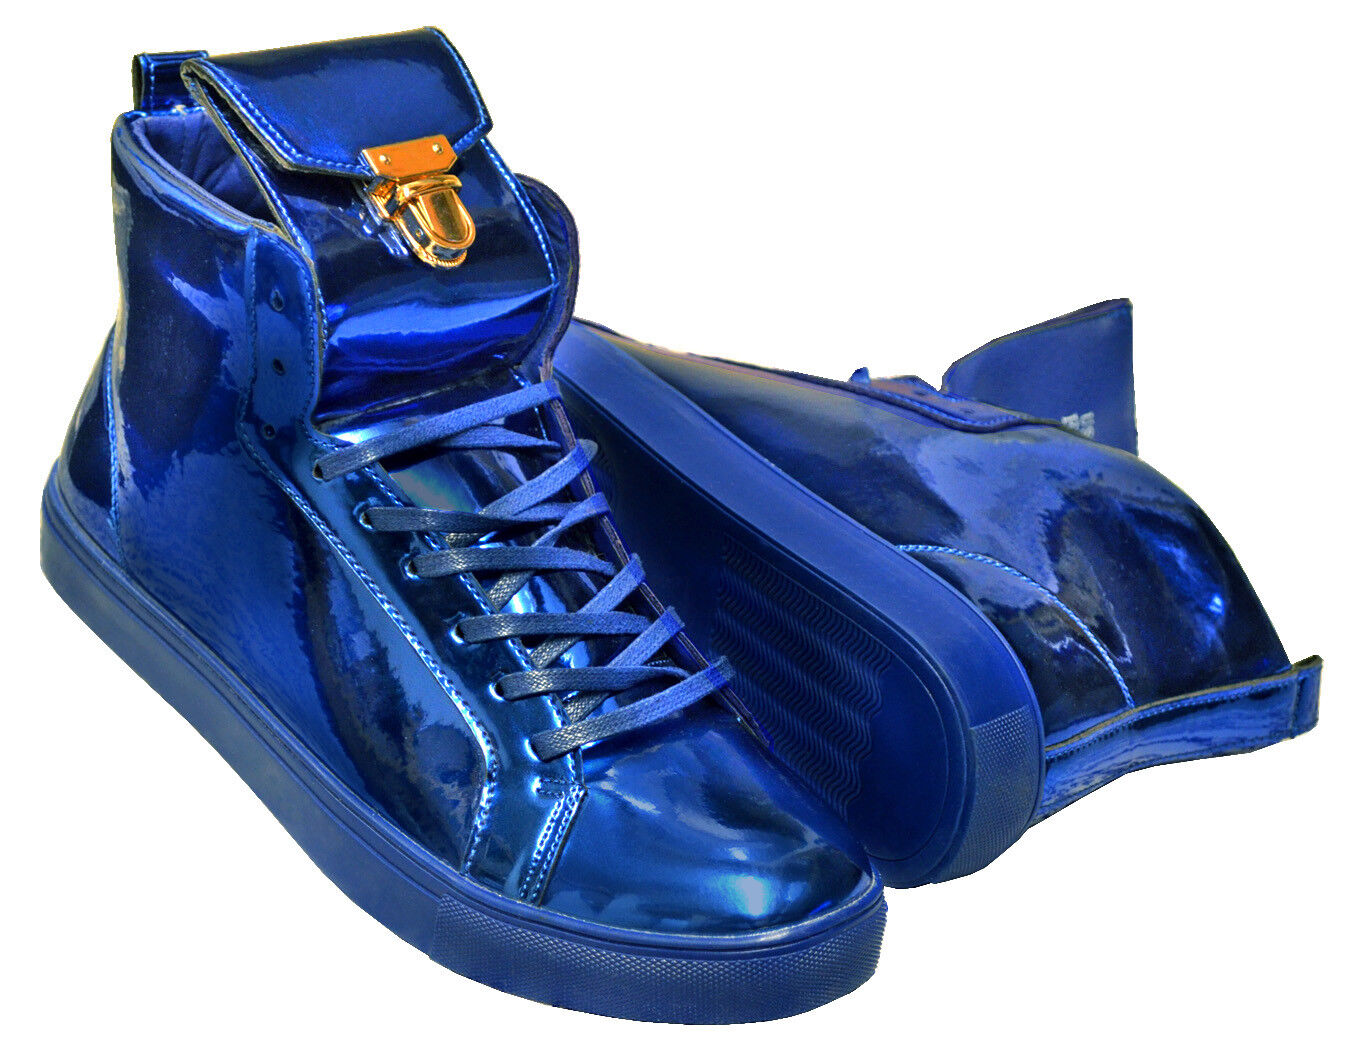 Fiesso Royal bluee Metallic Shiny High Top Lace gold Fashion Sneakers Size 9